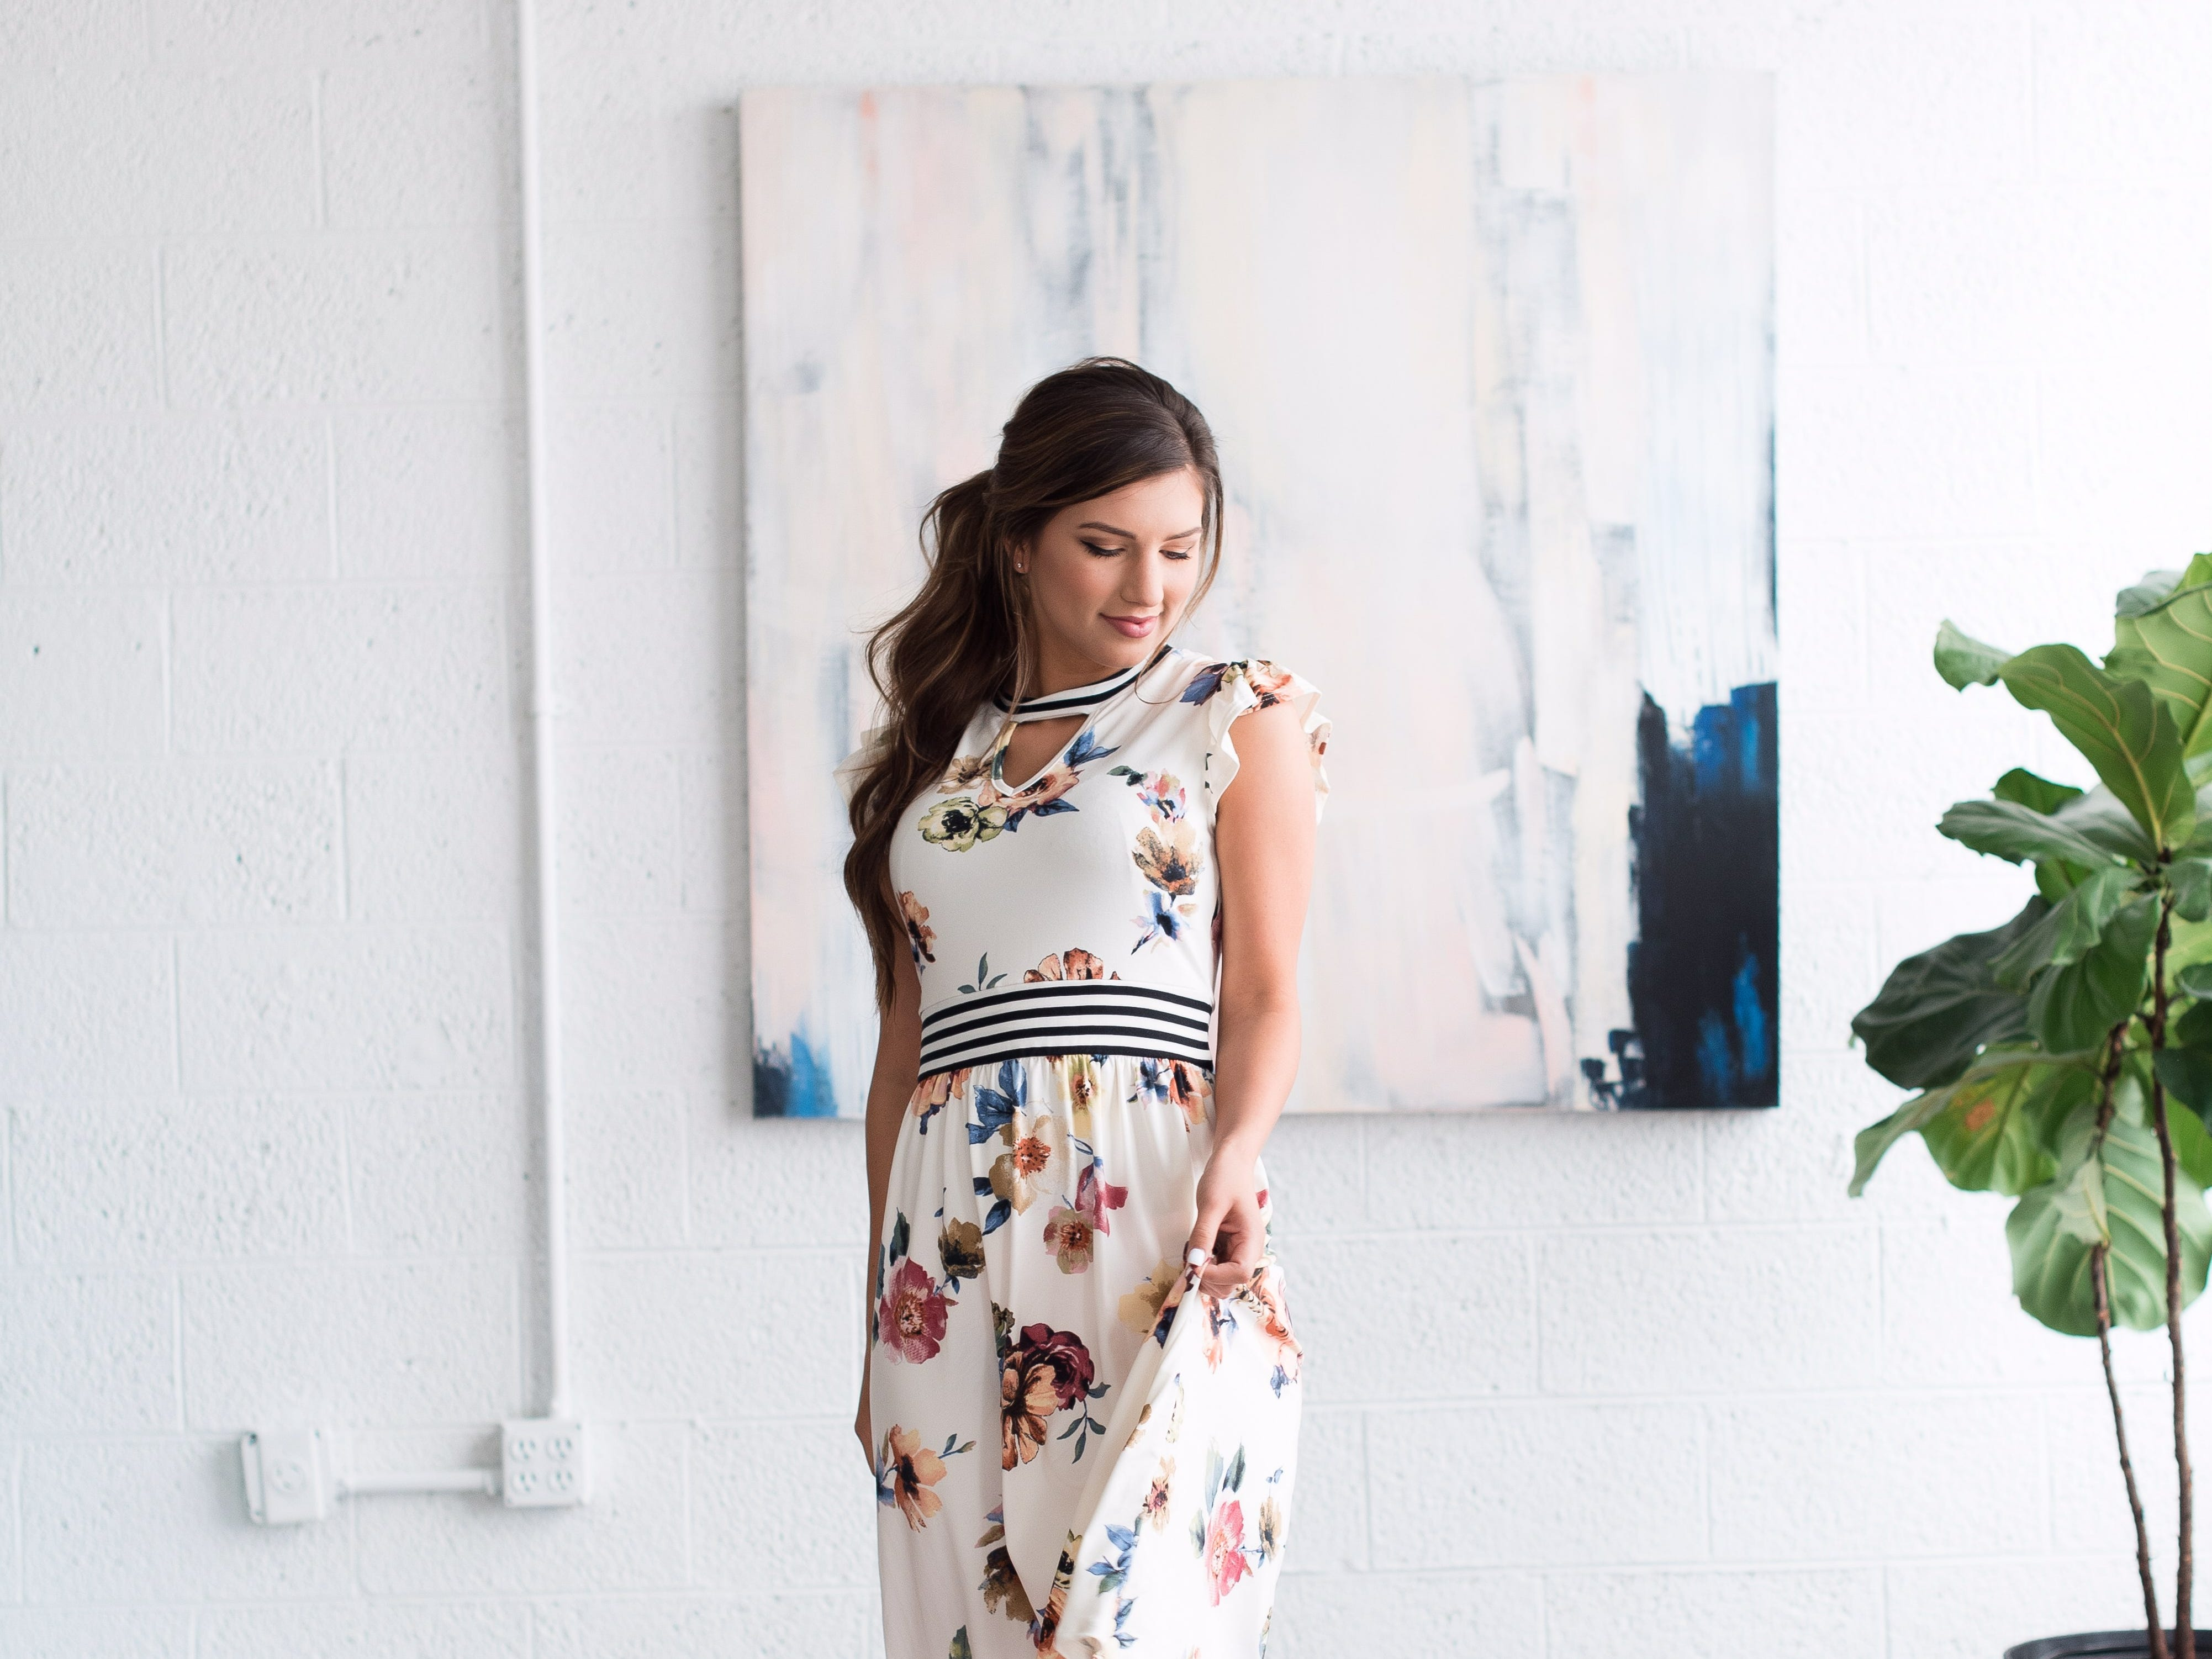 Carlin Bates models a dress from Bates Sisters' Boutique, an online clothing store that she, Erin Paine and Whitney Bates are starting together.